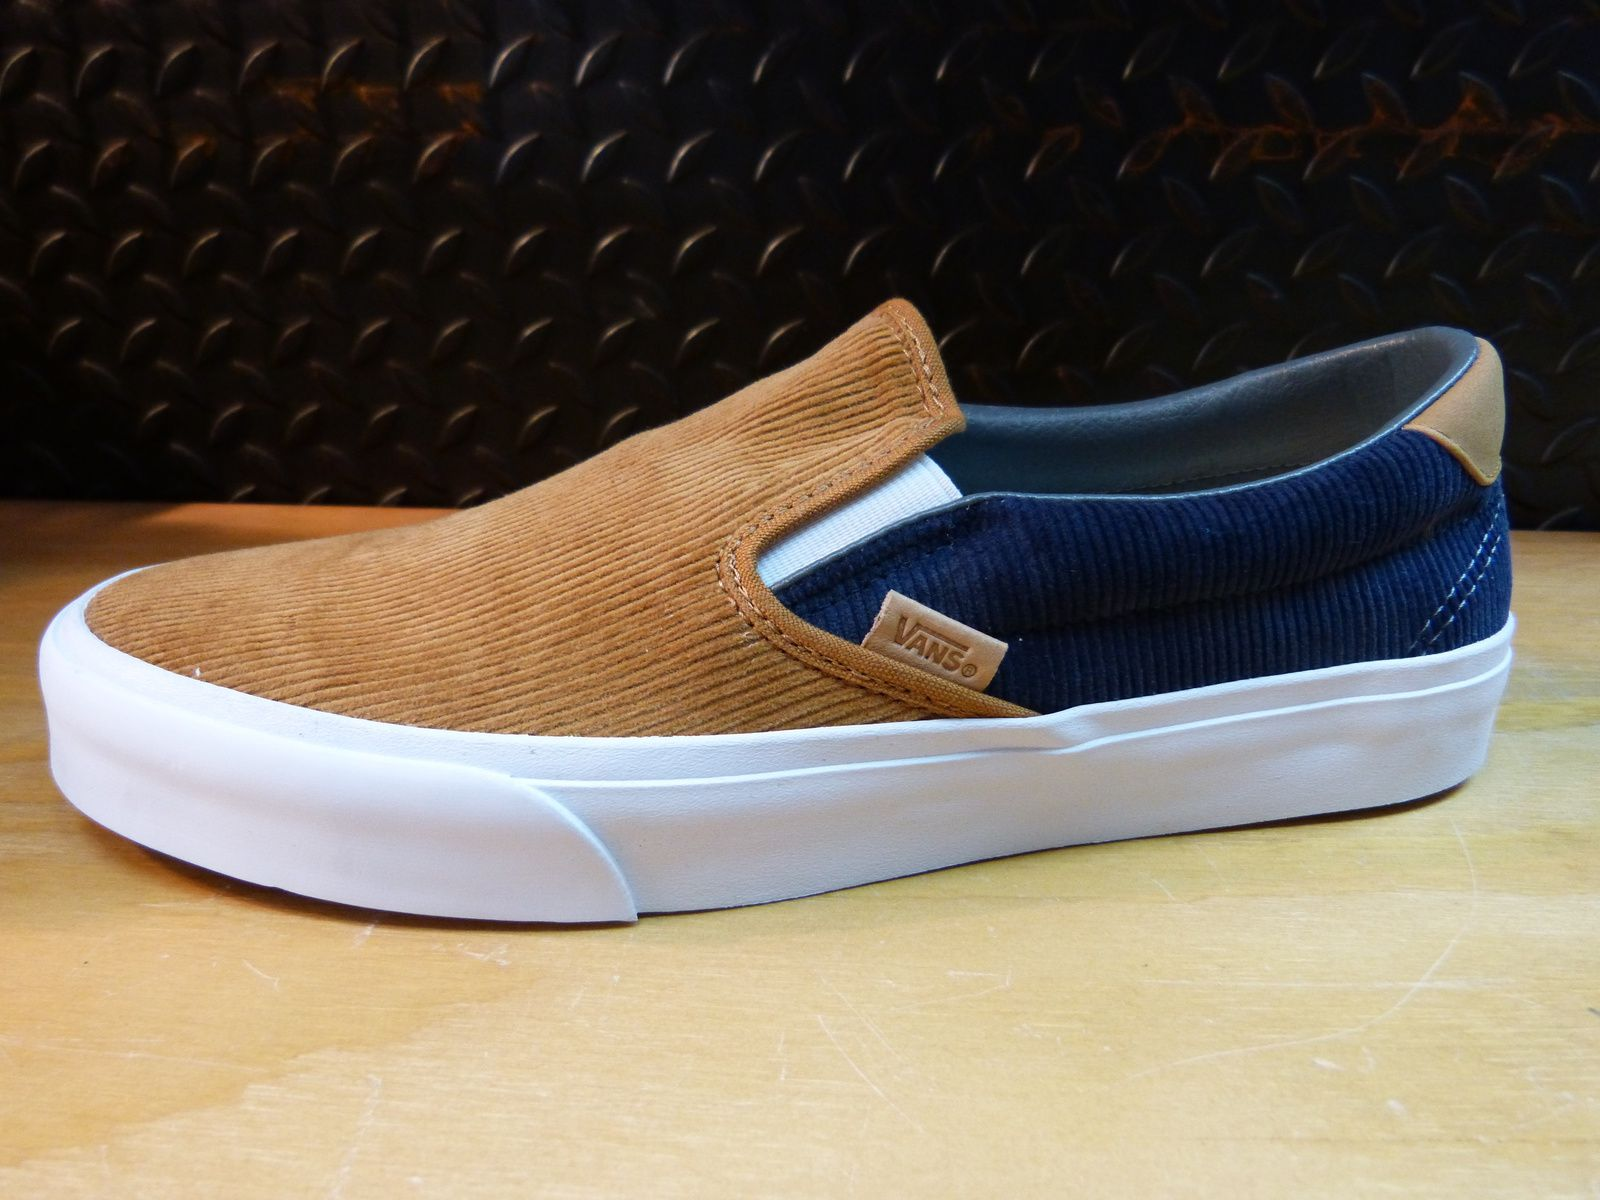 Vans California Fall 2014 part 1